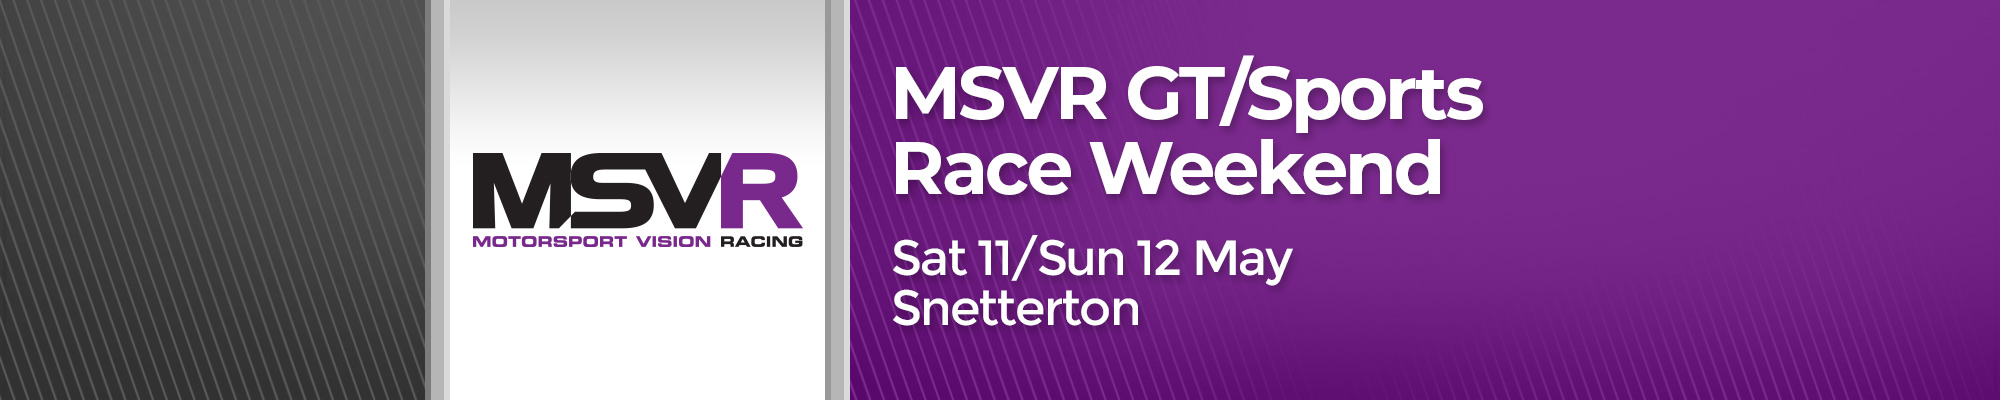 MSVR GT/Sports Race Weekend